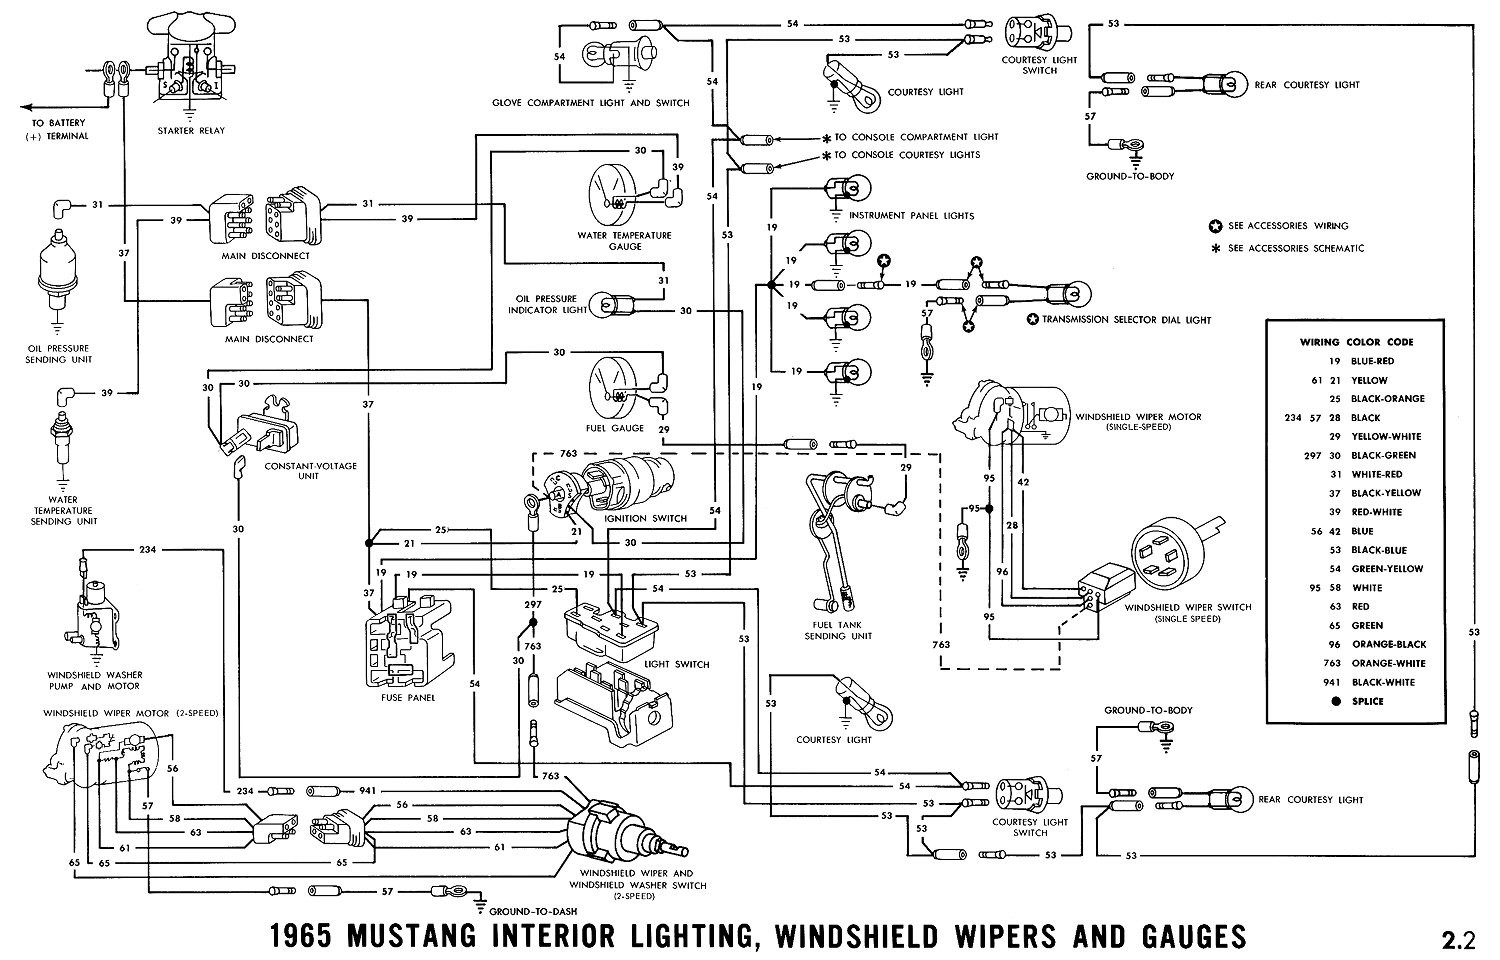 1966 Mustang Wiring Diagram Accessories Schematics Diagrams Alternator Belt Schematic Harness Wire Data Rh Vagabondtraveller Co Electrical 1965